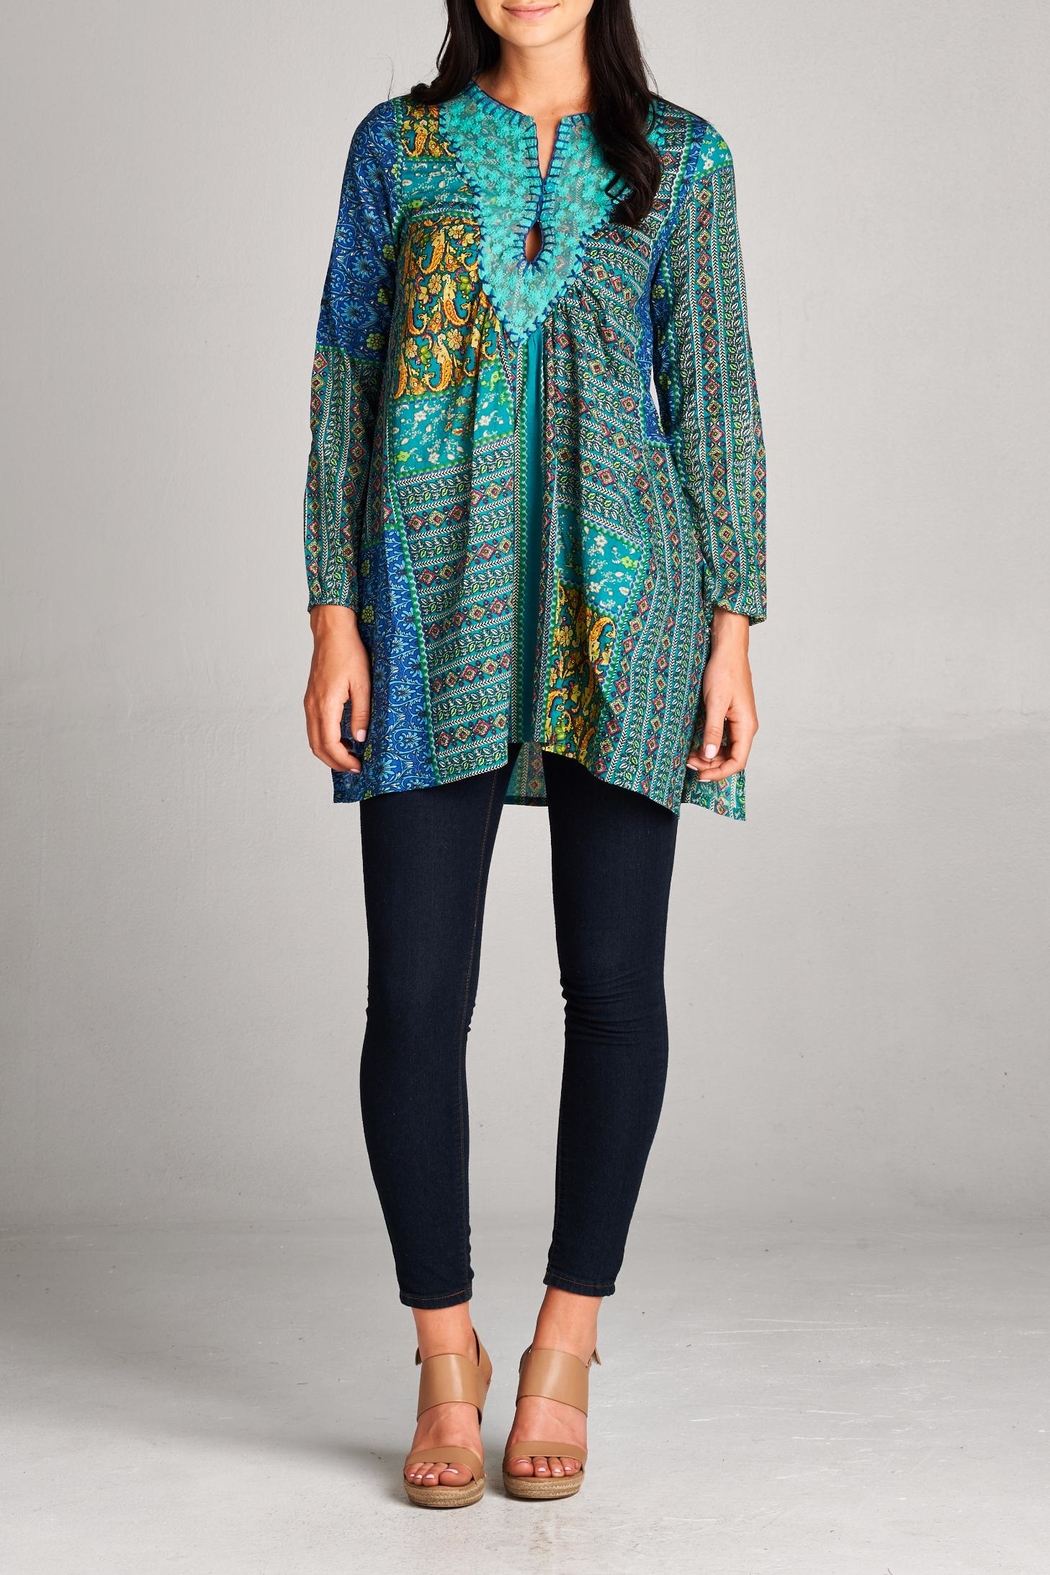 Velzera Patchwork Tunic Top - Main Image